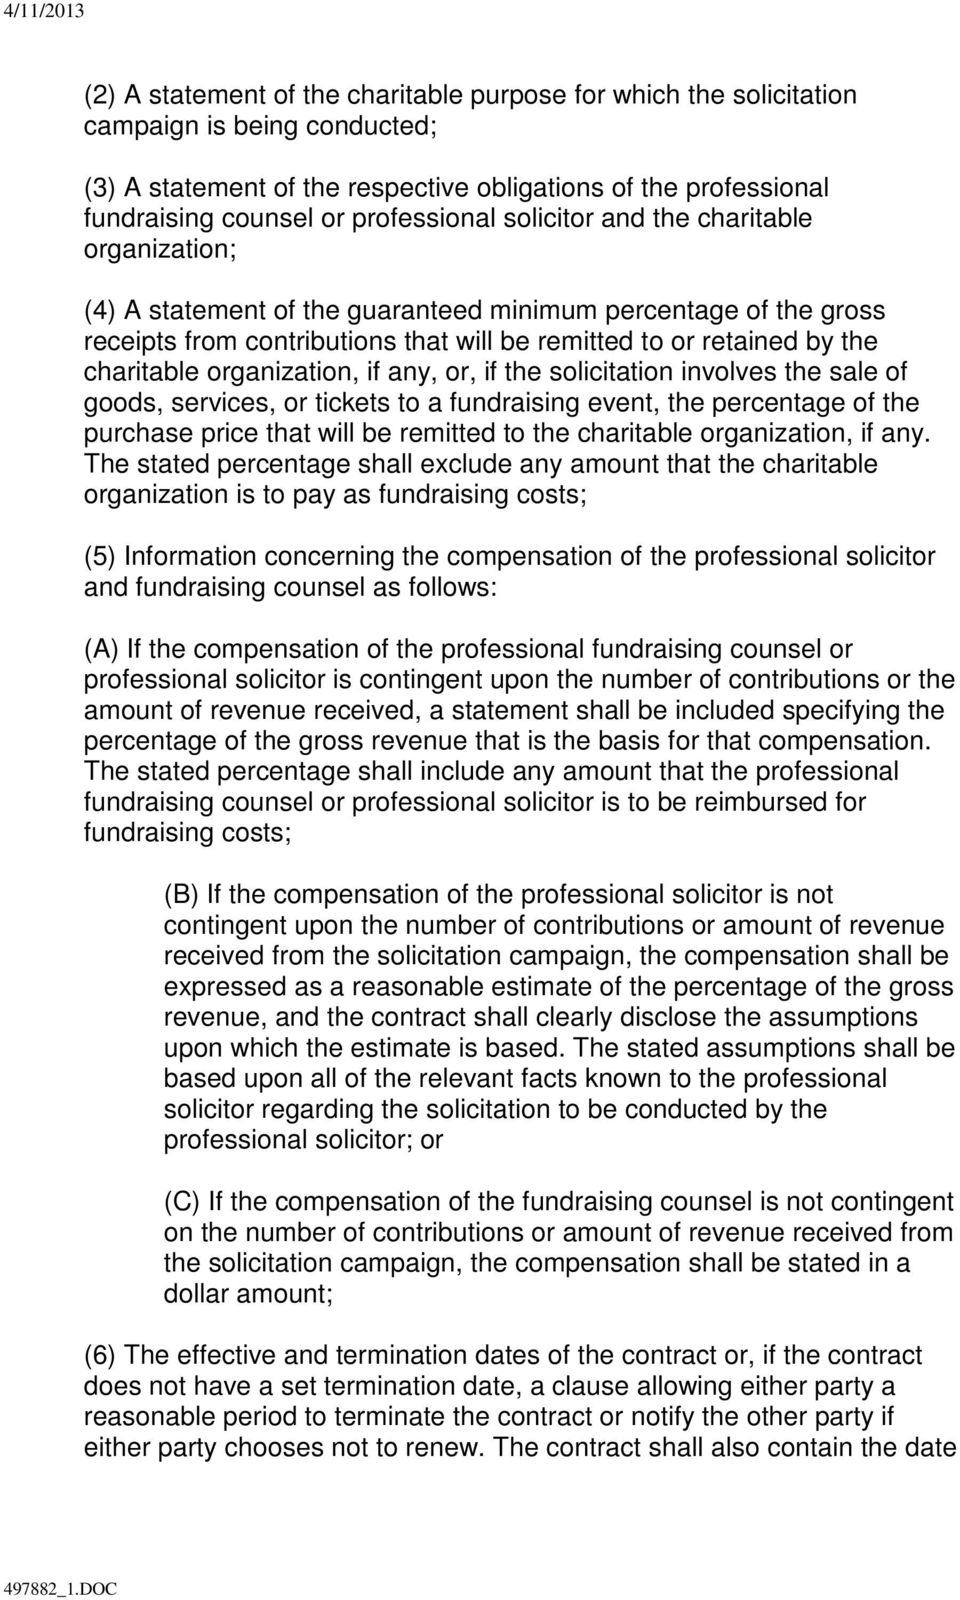 organization, if any, or, if the solicitation involves the sale of goods, services, or tickets to a fundraising event, the percentage of the purchase price that will be remitted to the charitable